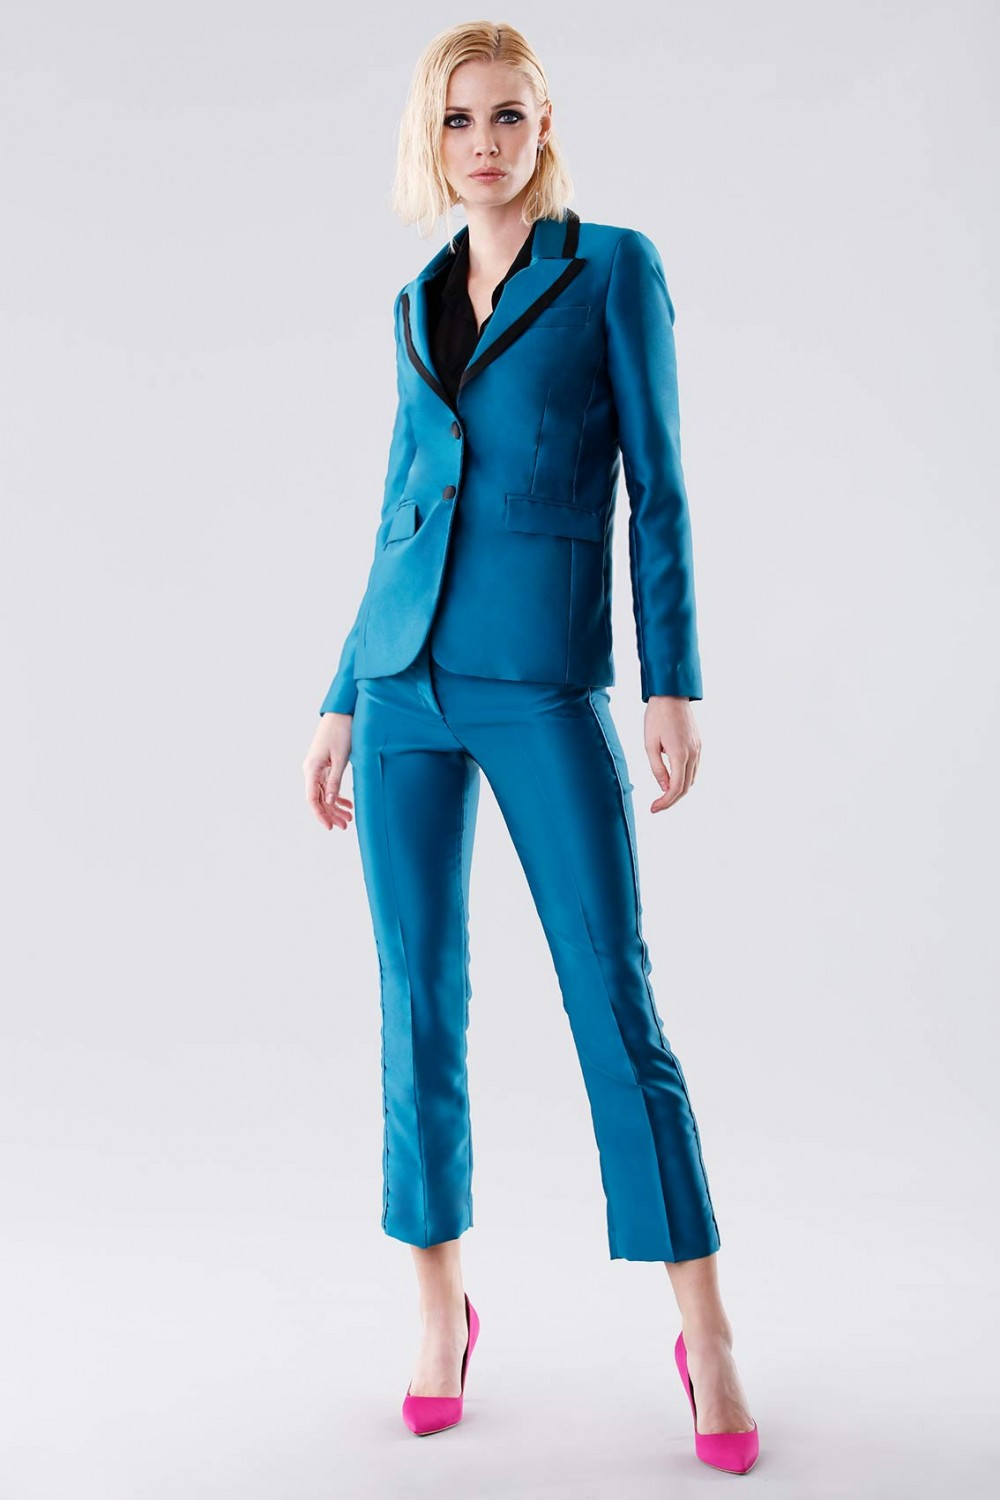 Turquoise satin jacket and trousers